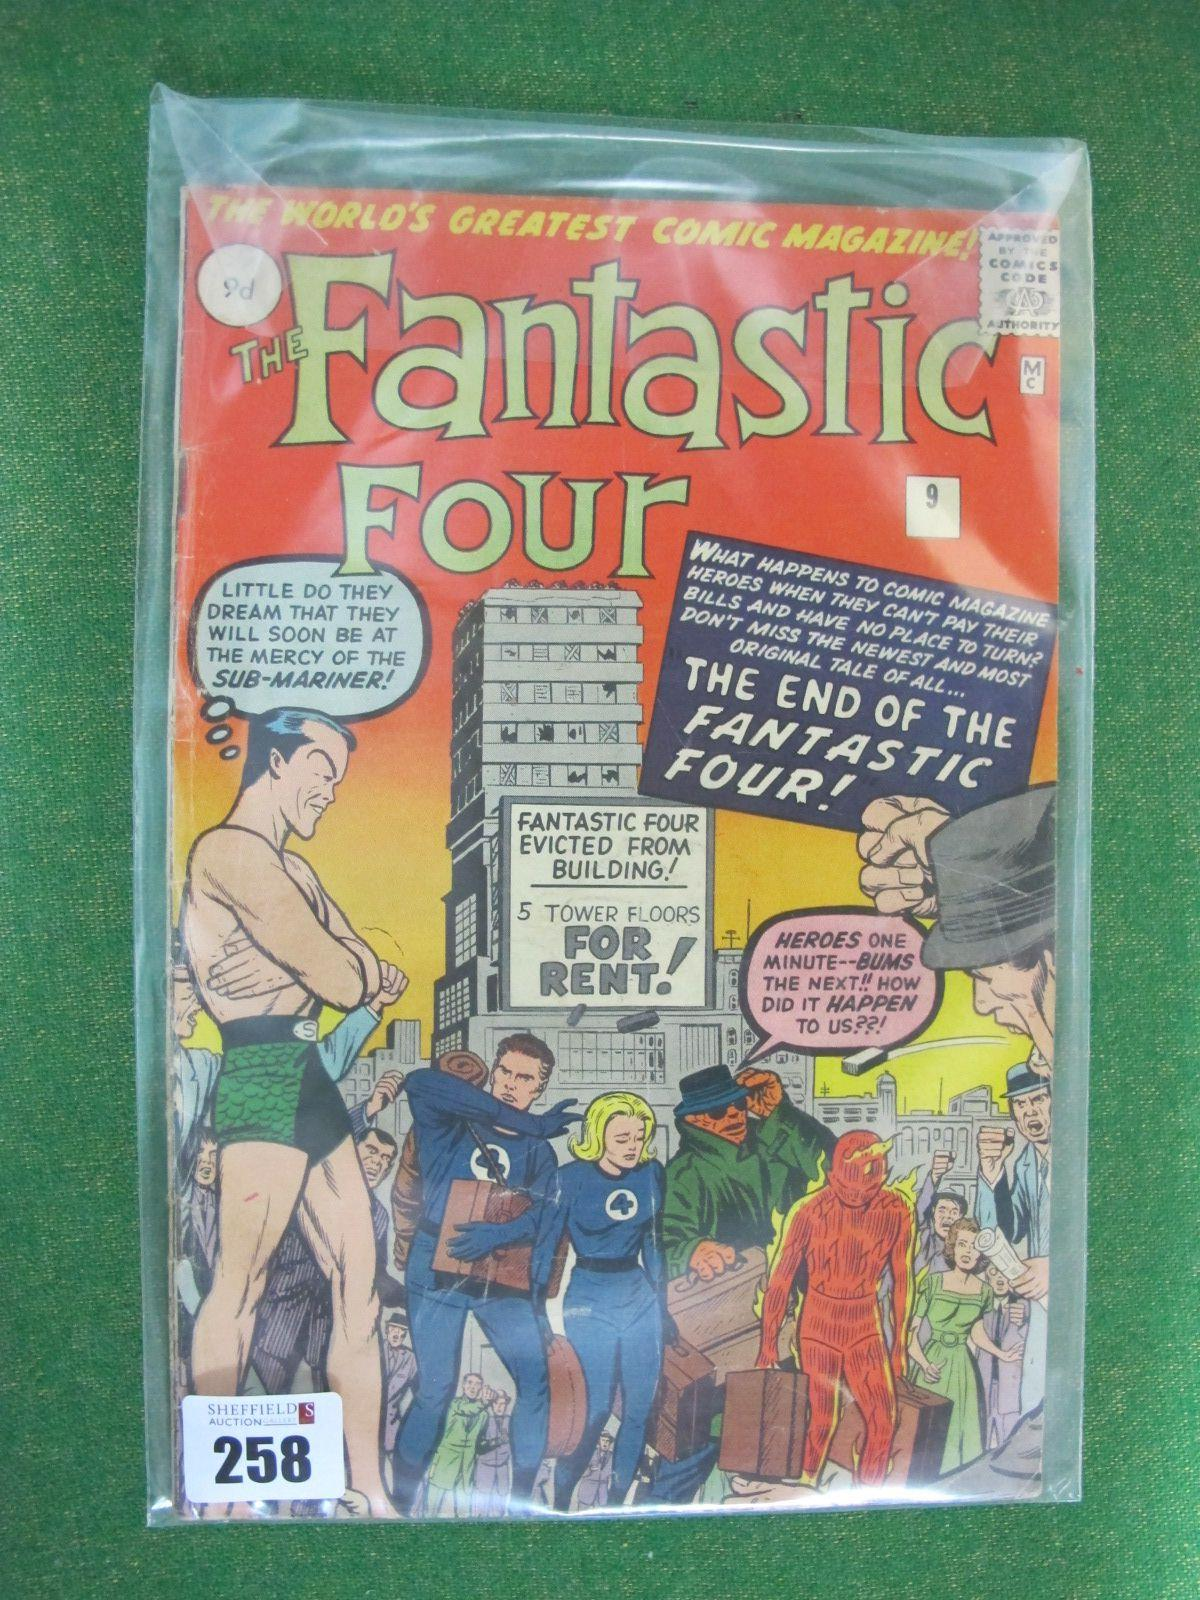 The Fantastic Four #9/No.9, 9d, in used well read condition.